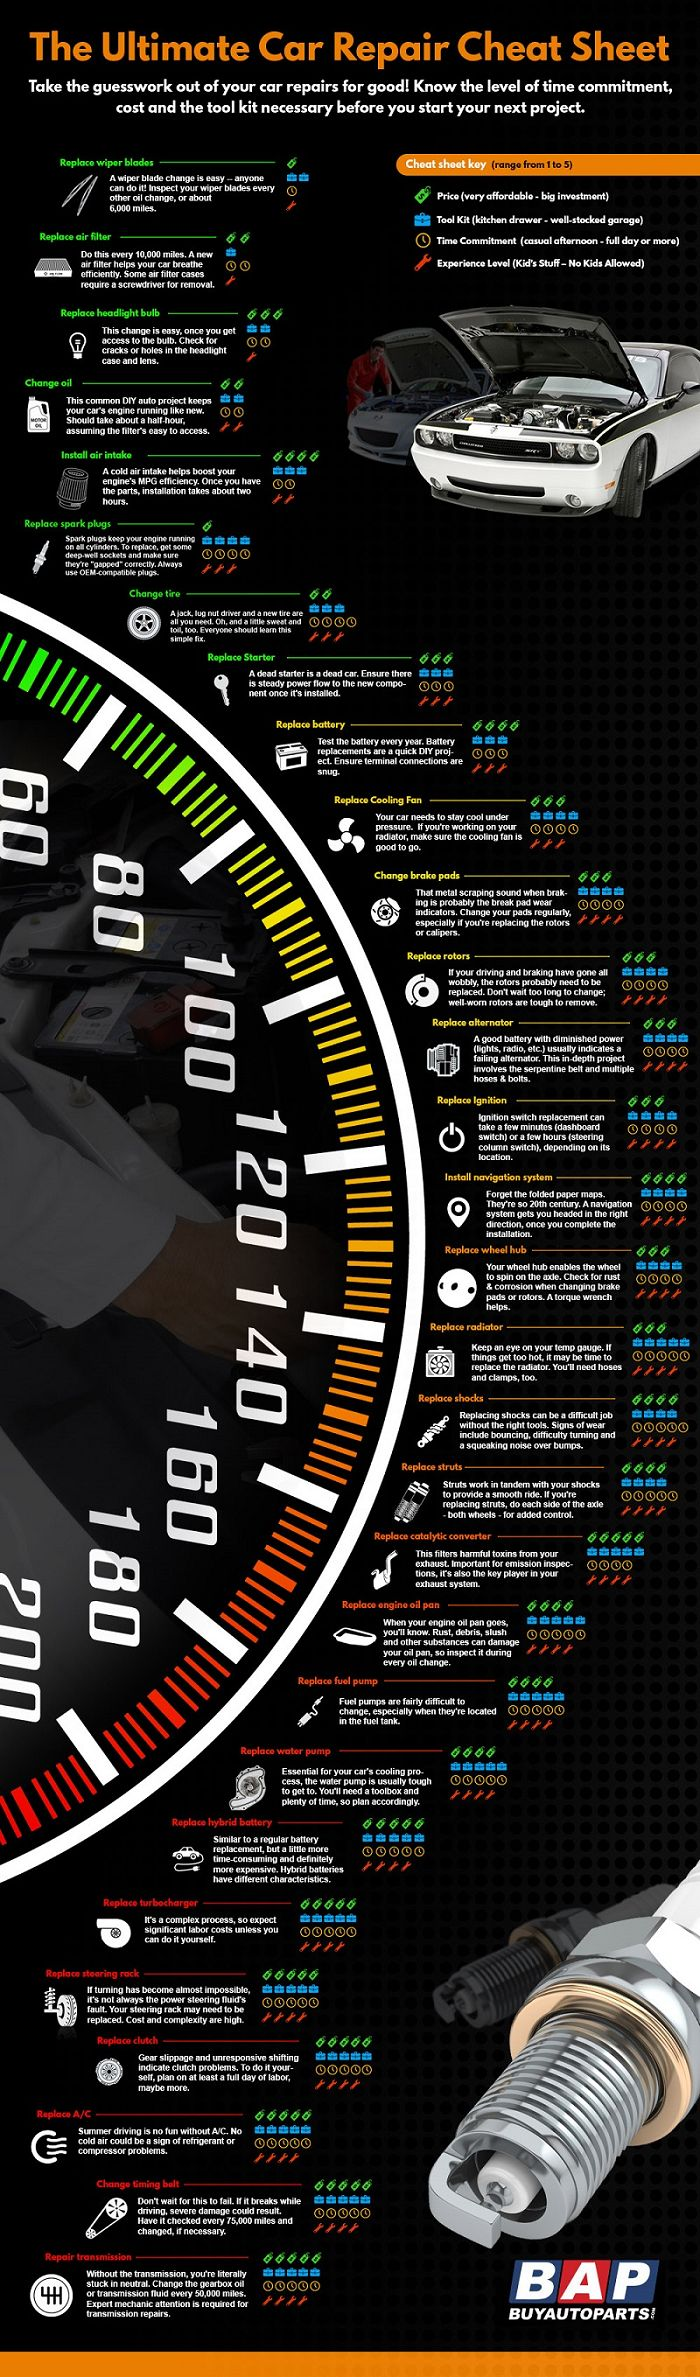 The Ultimate Car Repair Cheat Sheet Infographic - BuyAutoParts.com